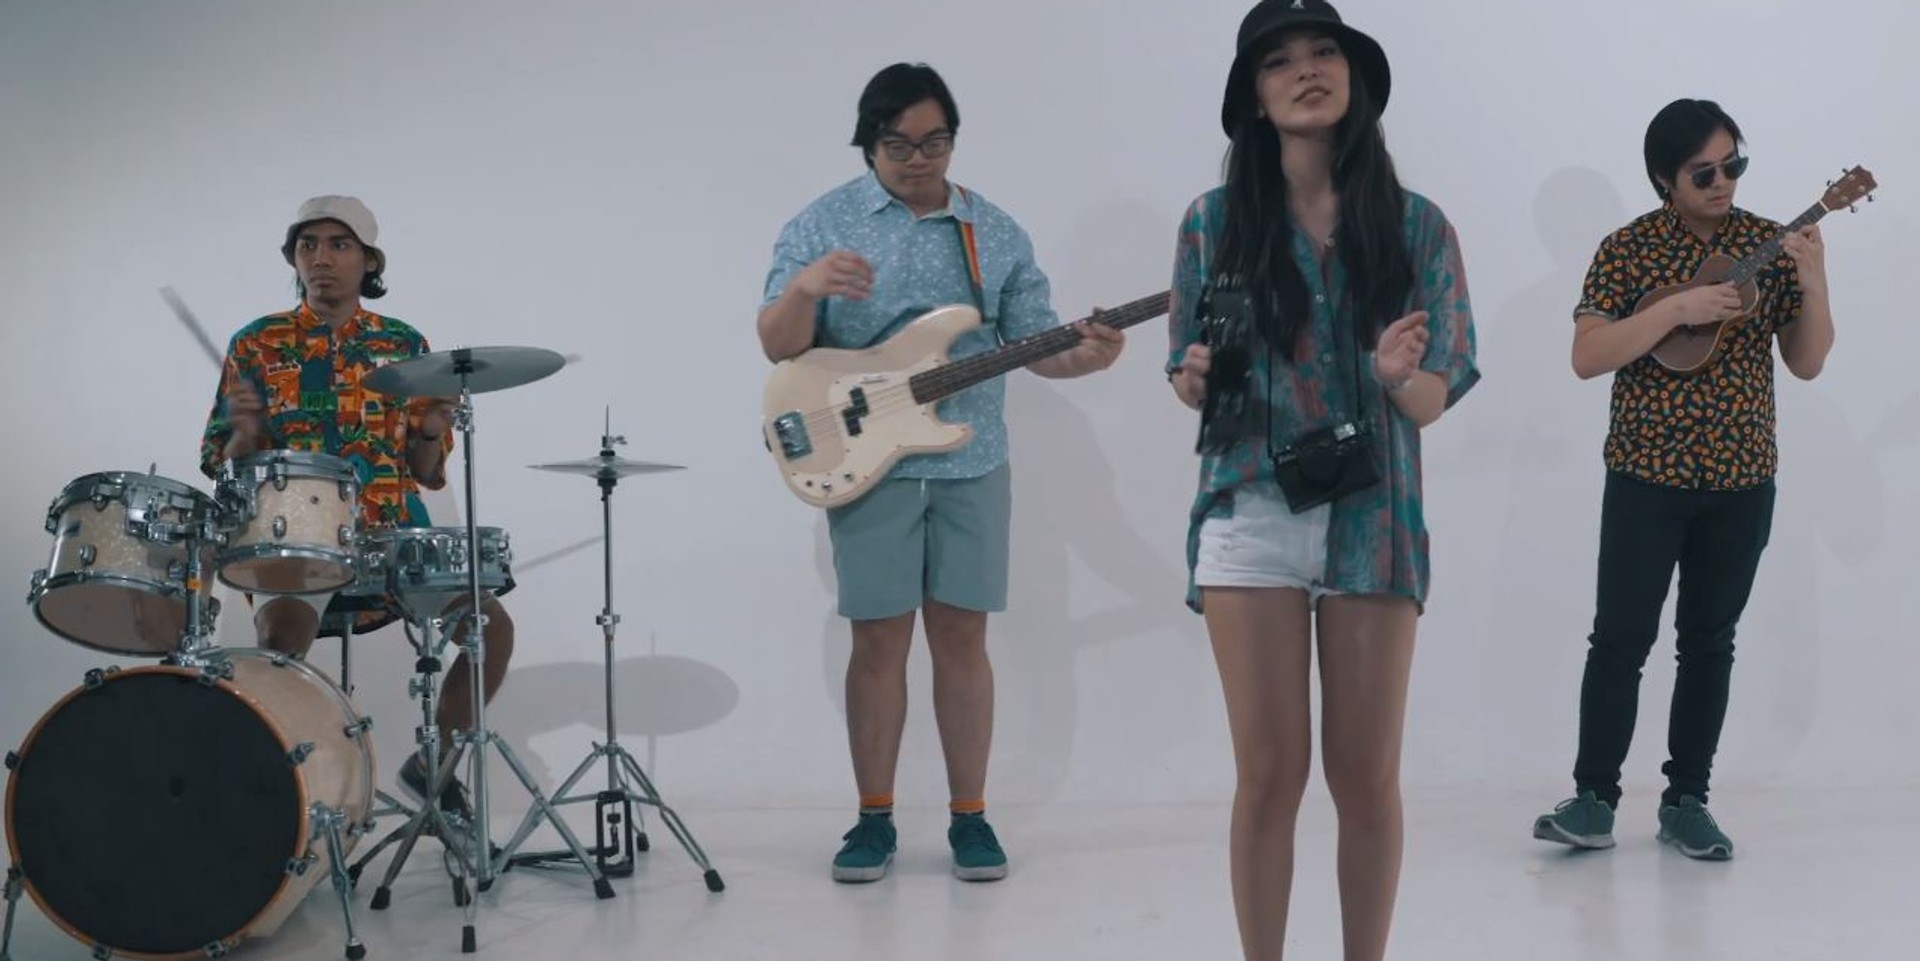 Garage Morning show off their fun side with 'Steps' music video – watch